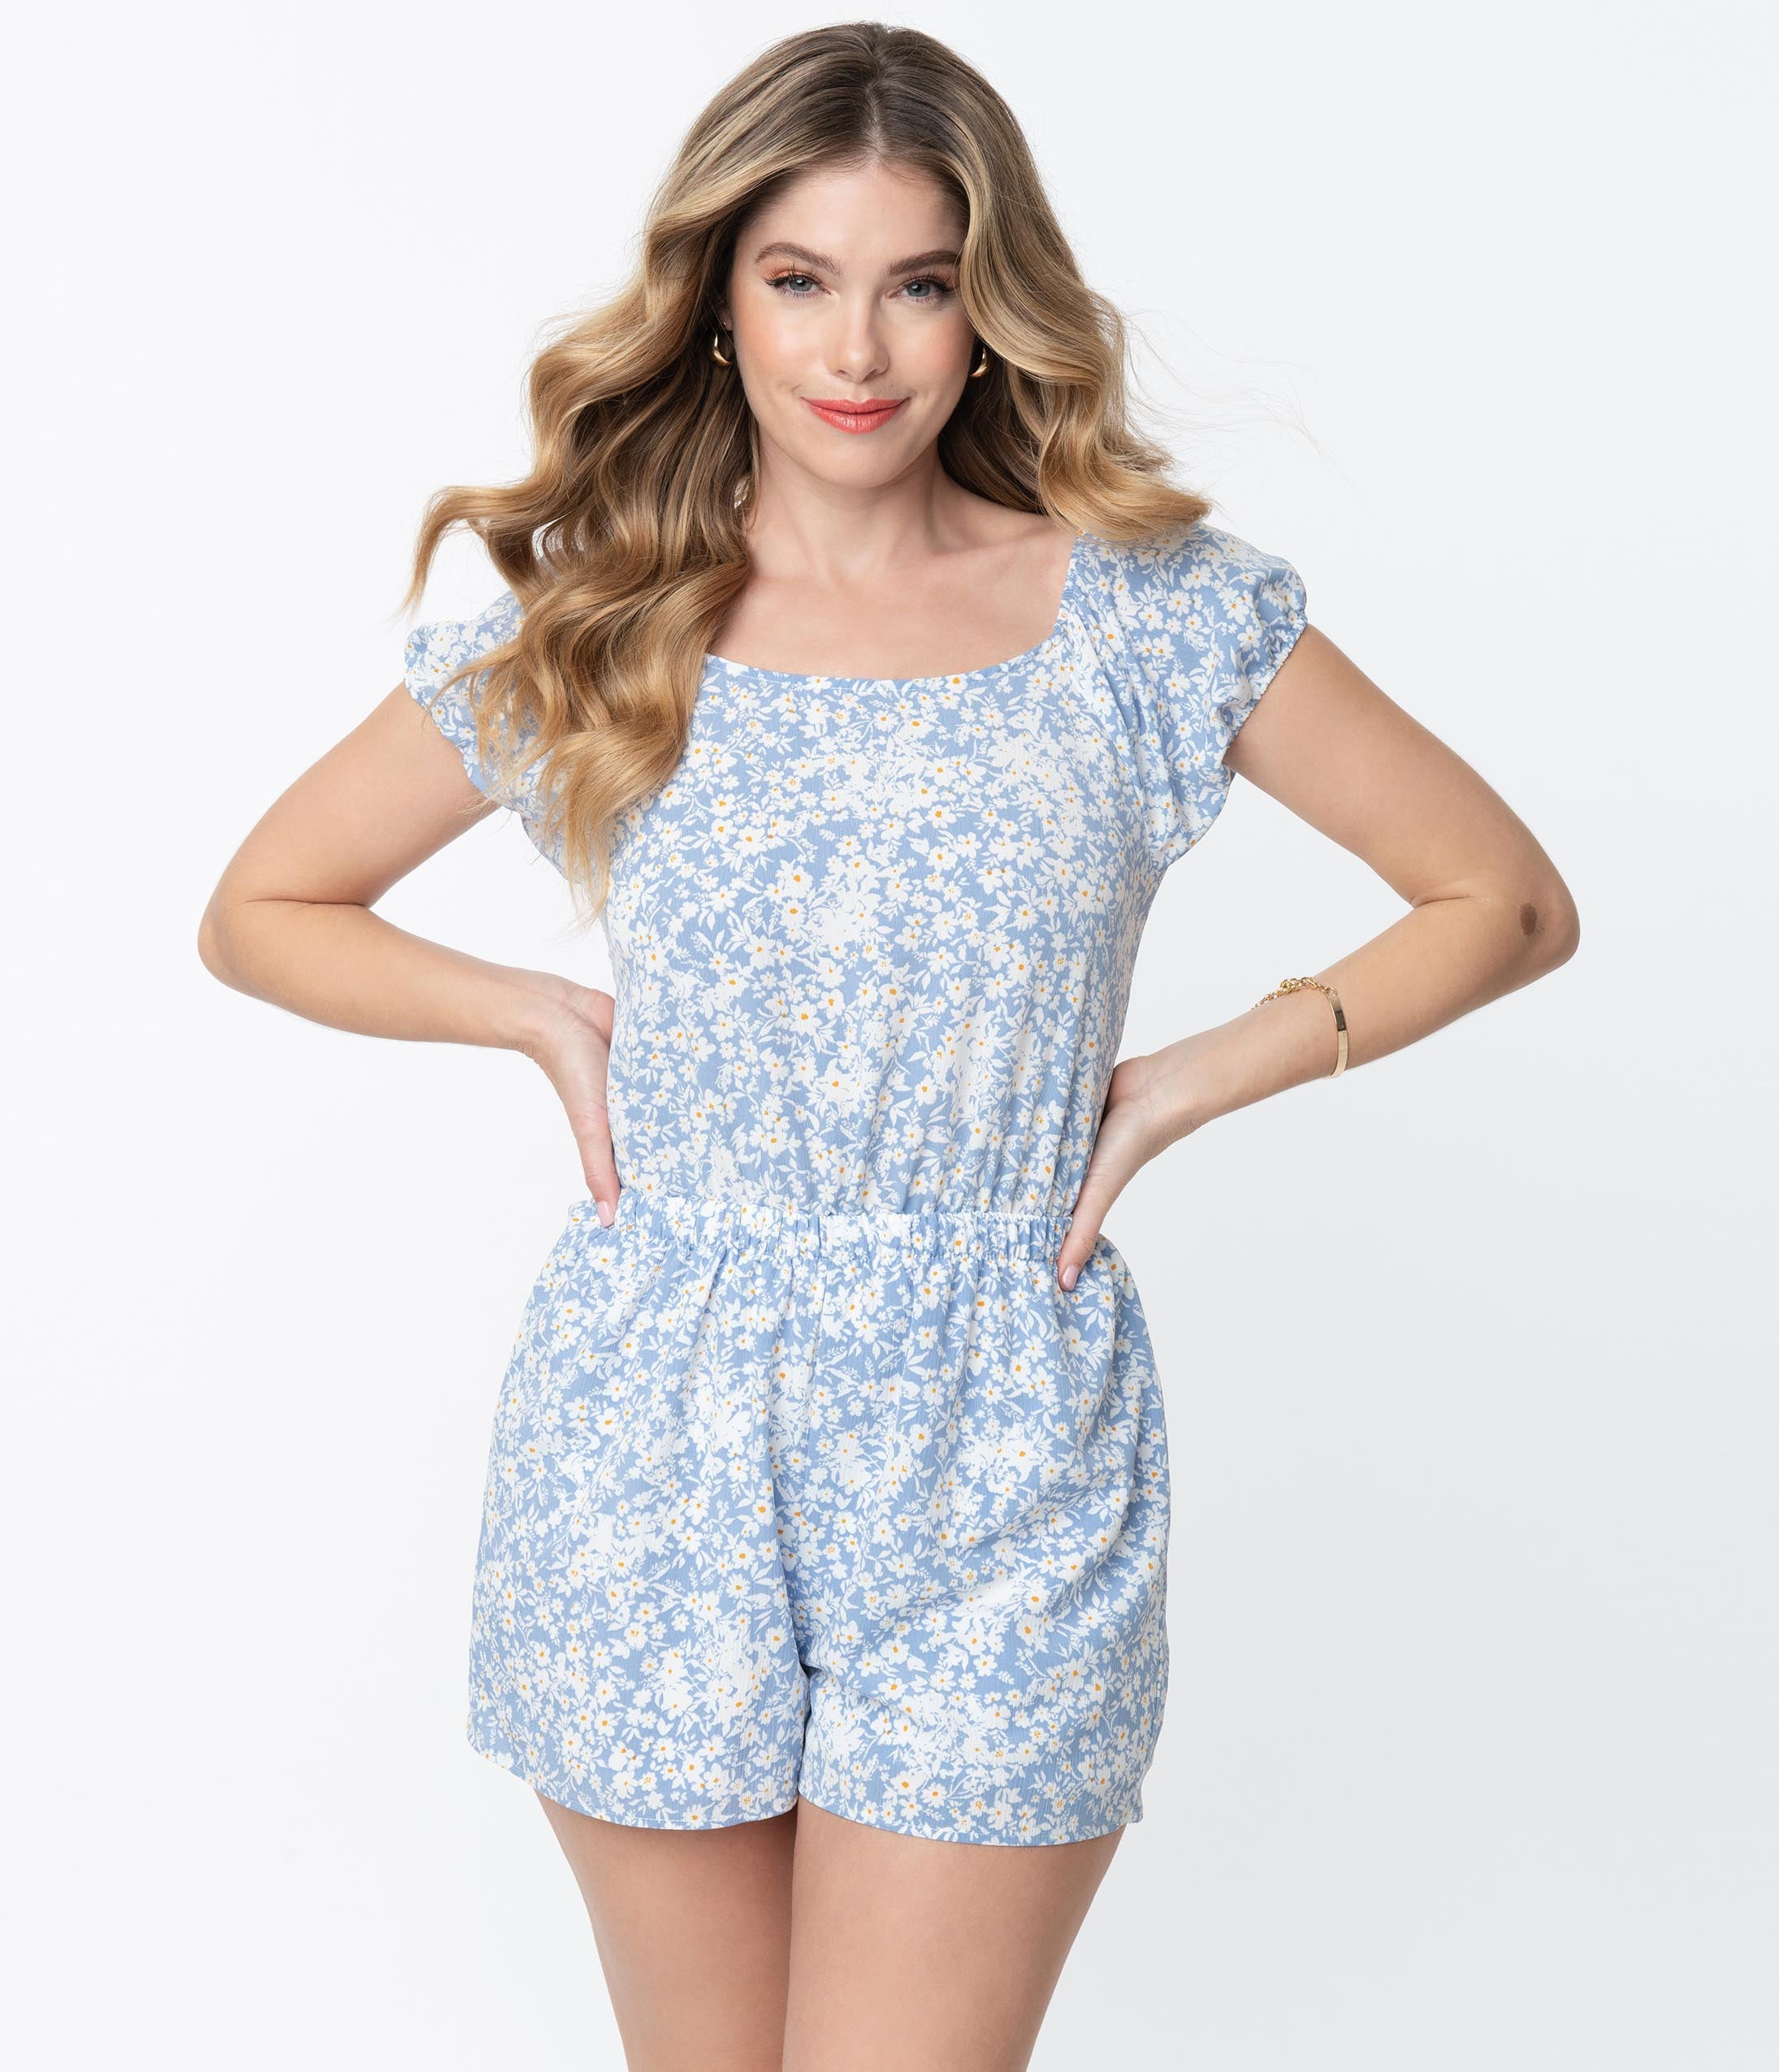 Vintage Rompers, Playsuits | Retro, Pin Up, Rockabilly Playsuits Light Blue  White Floral Back Tie Romper $58.00 AT vintagedancer.com